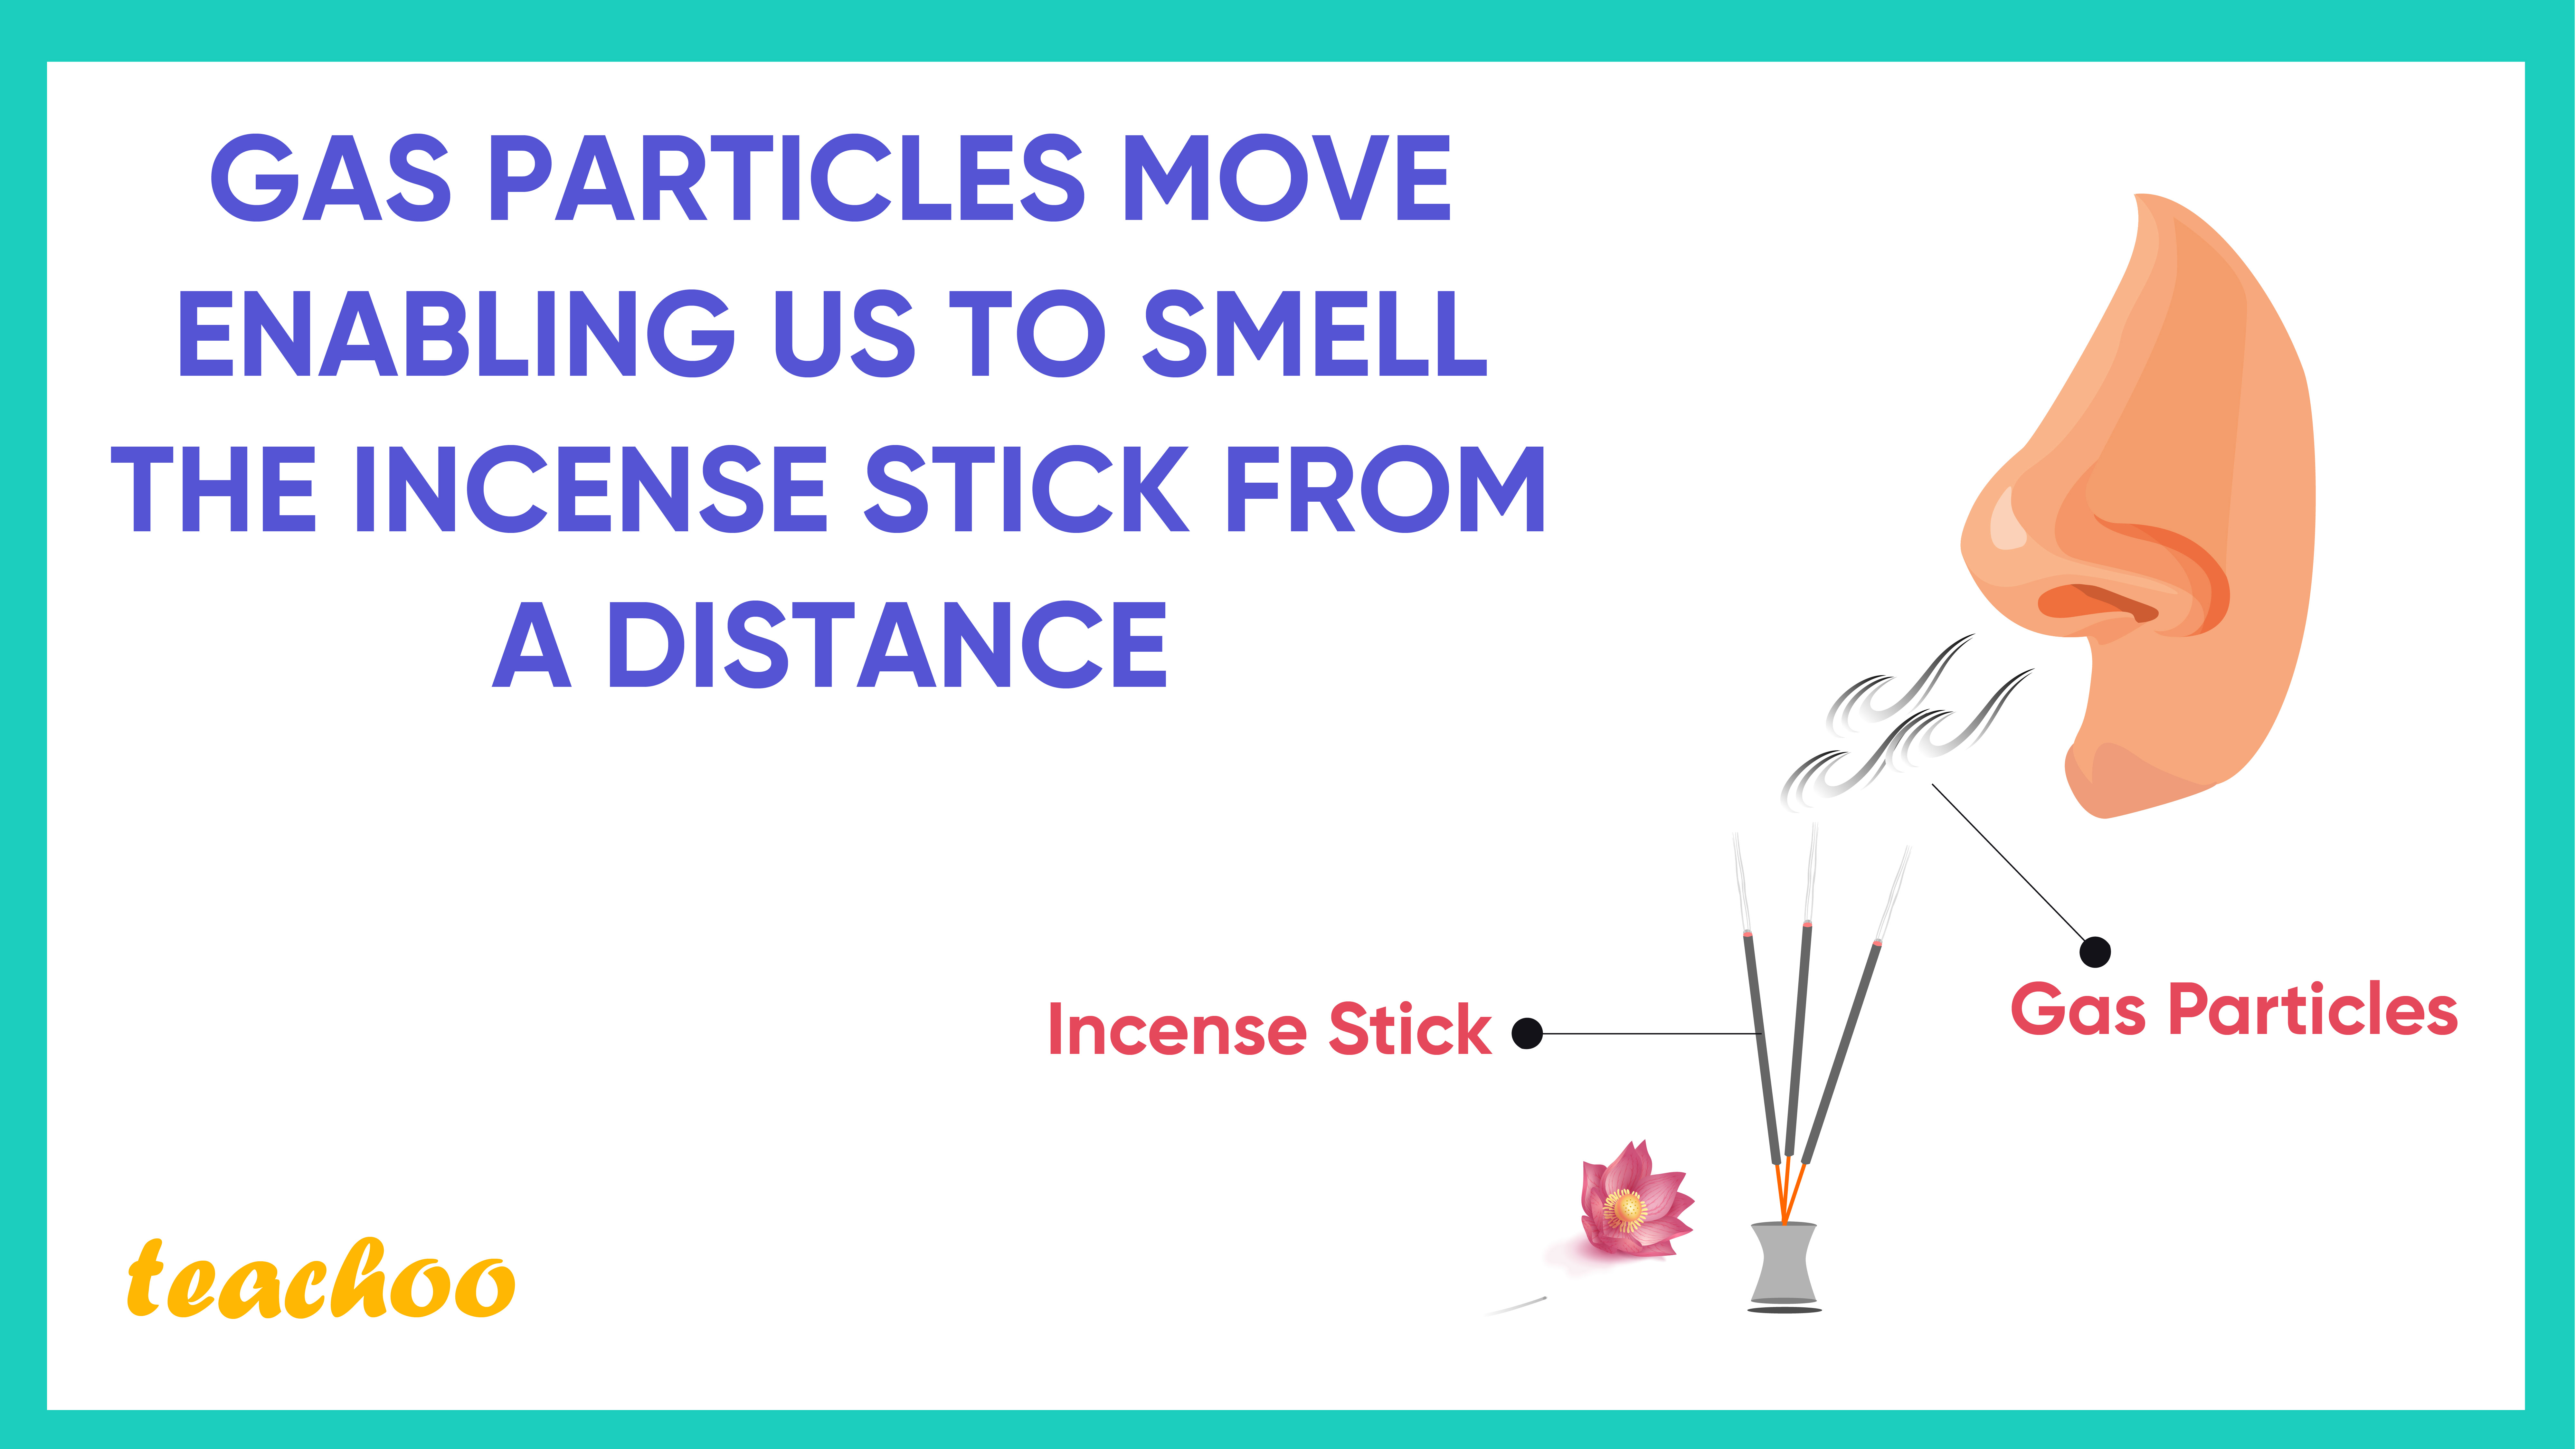 Gas particles move enabling us to smell-Teachoo-01.jpg